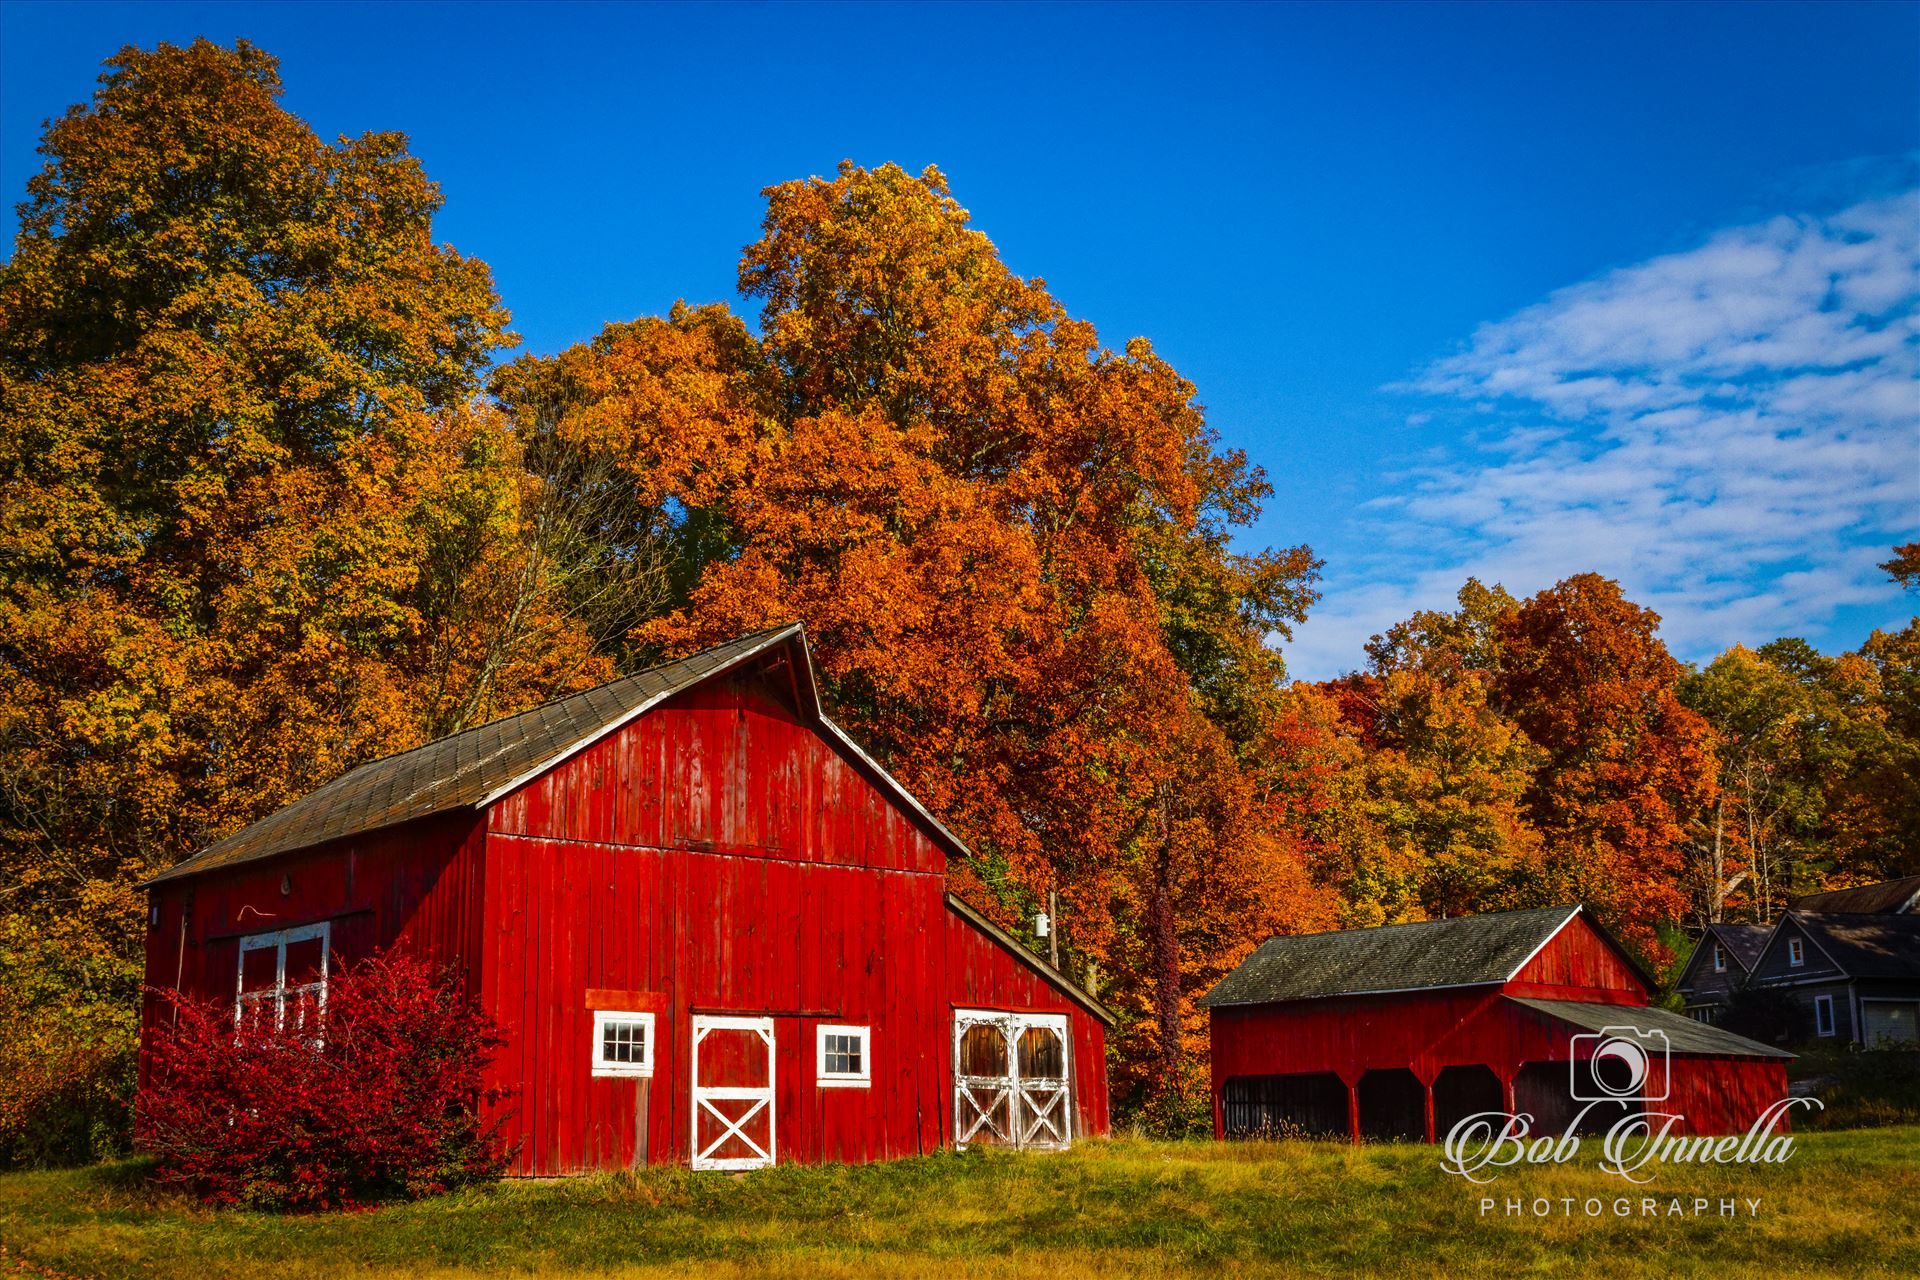 Hainesville, Nj Red Barn   Farm-.jpg - Red Barn Farm in Hainesville, New Jersey by Buckmaster